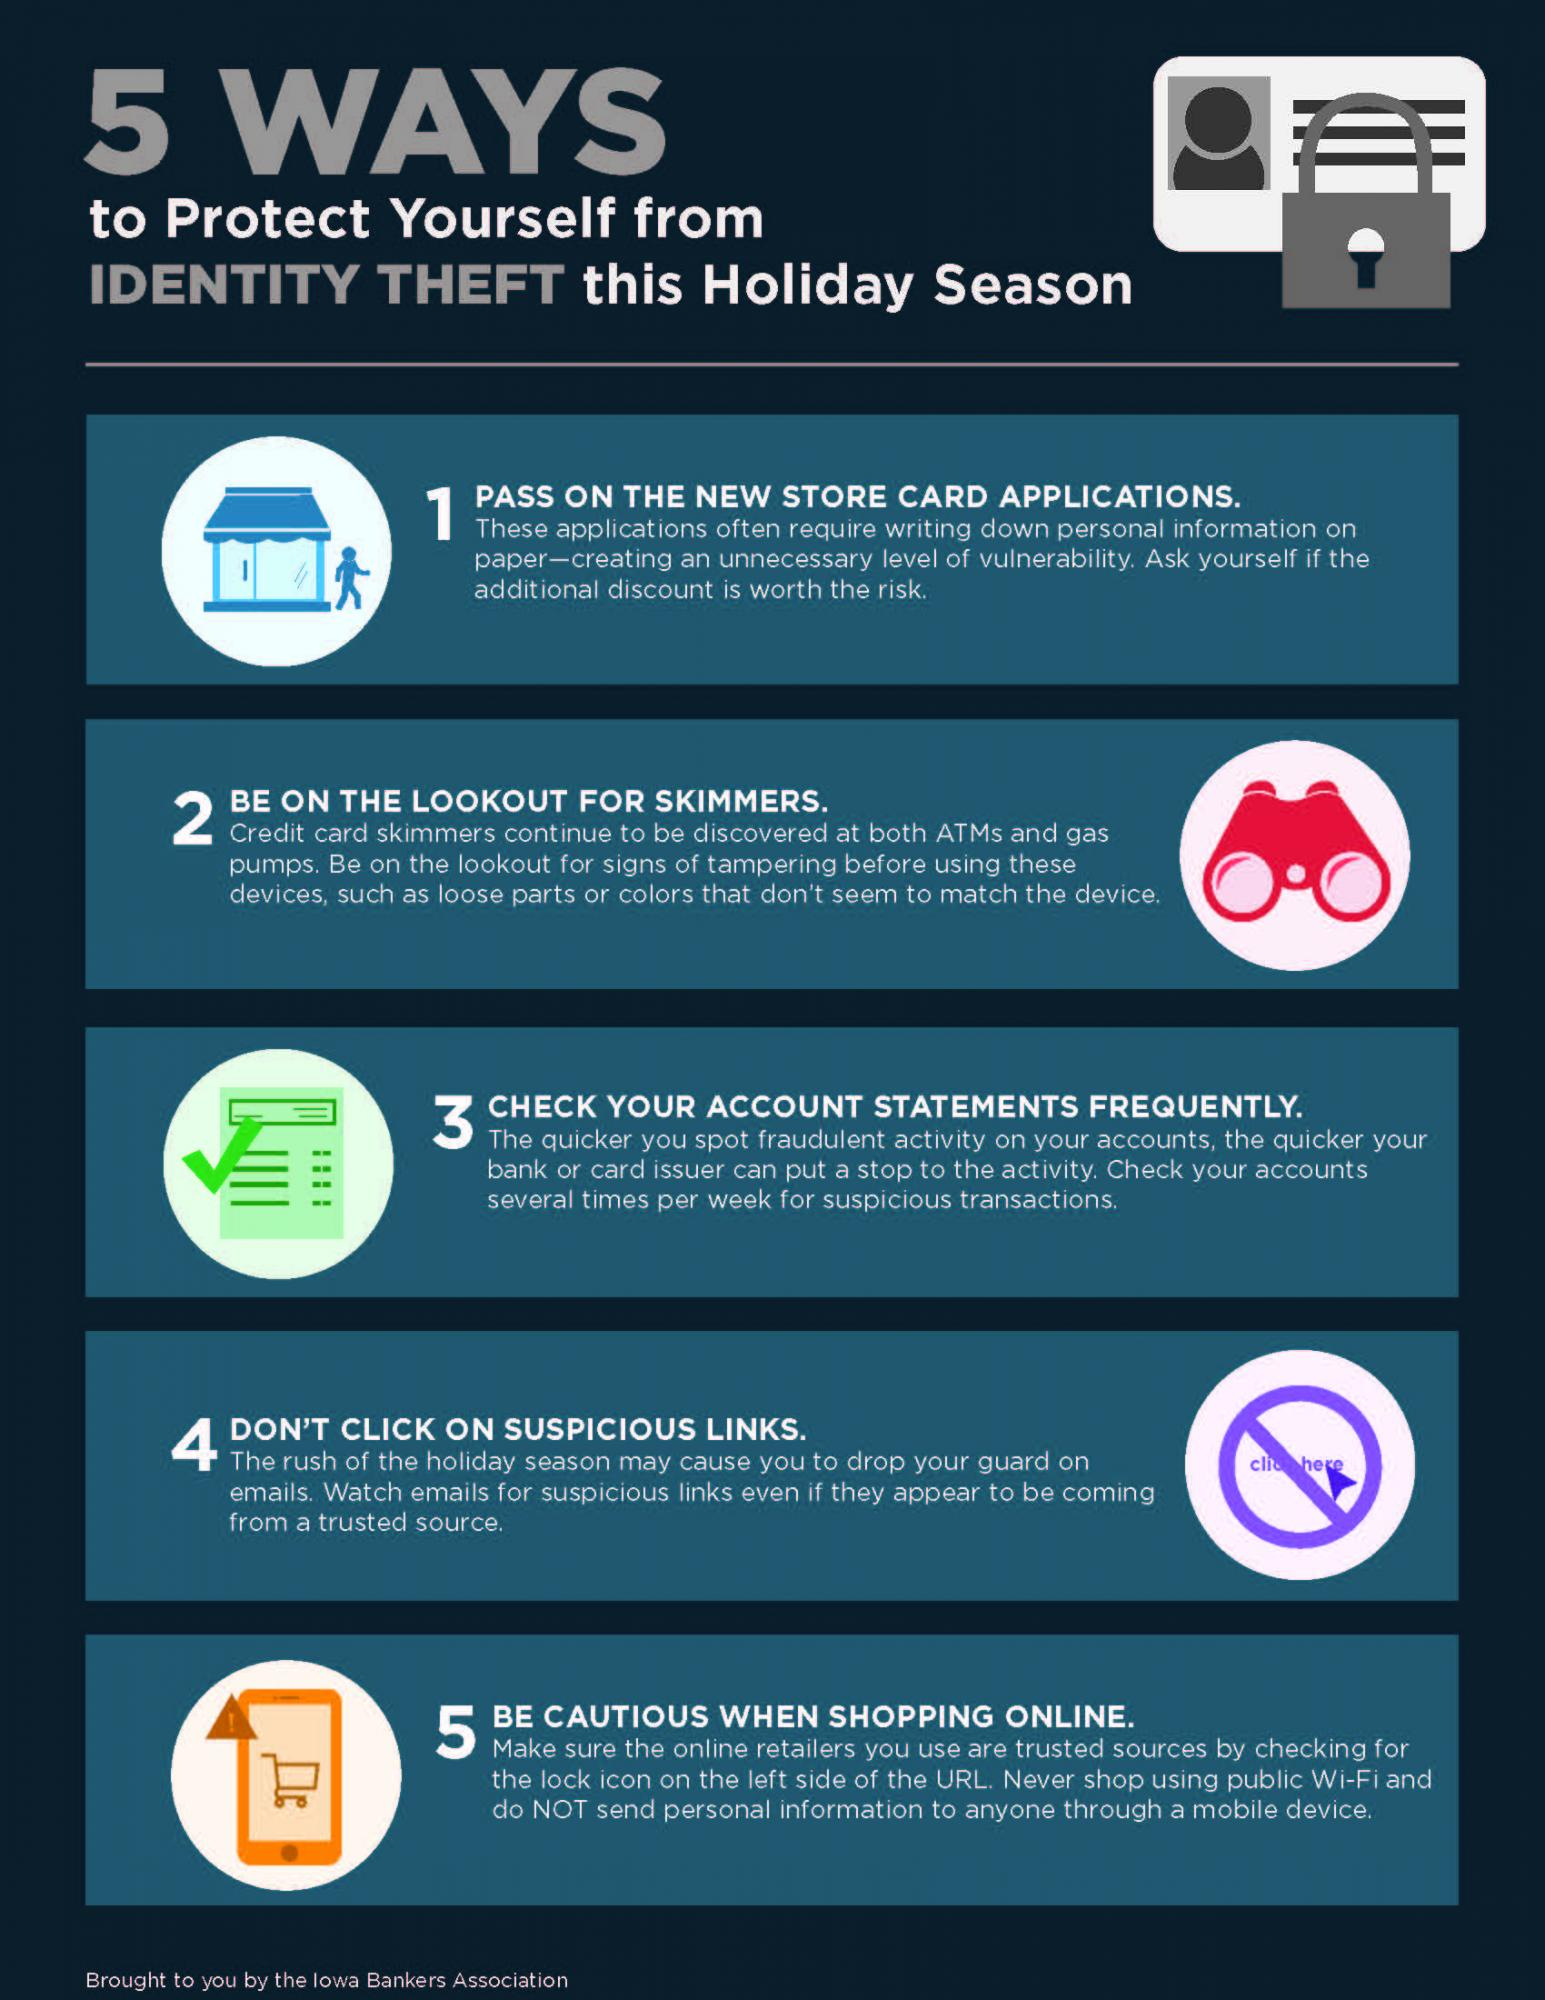 5 ways to protect yourself from identity theft 1. Pass on the new store card applications 2. Be on the lookout for skimmers 3. Check your account statements frequently 4. Don't click suspicious links 5. Be cautious while shopping online